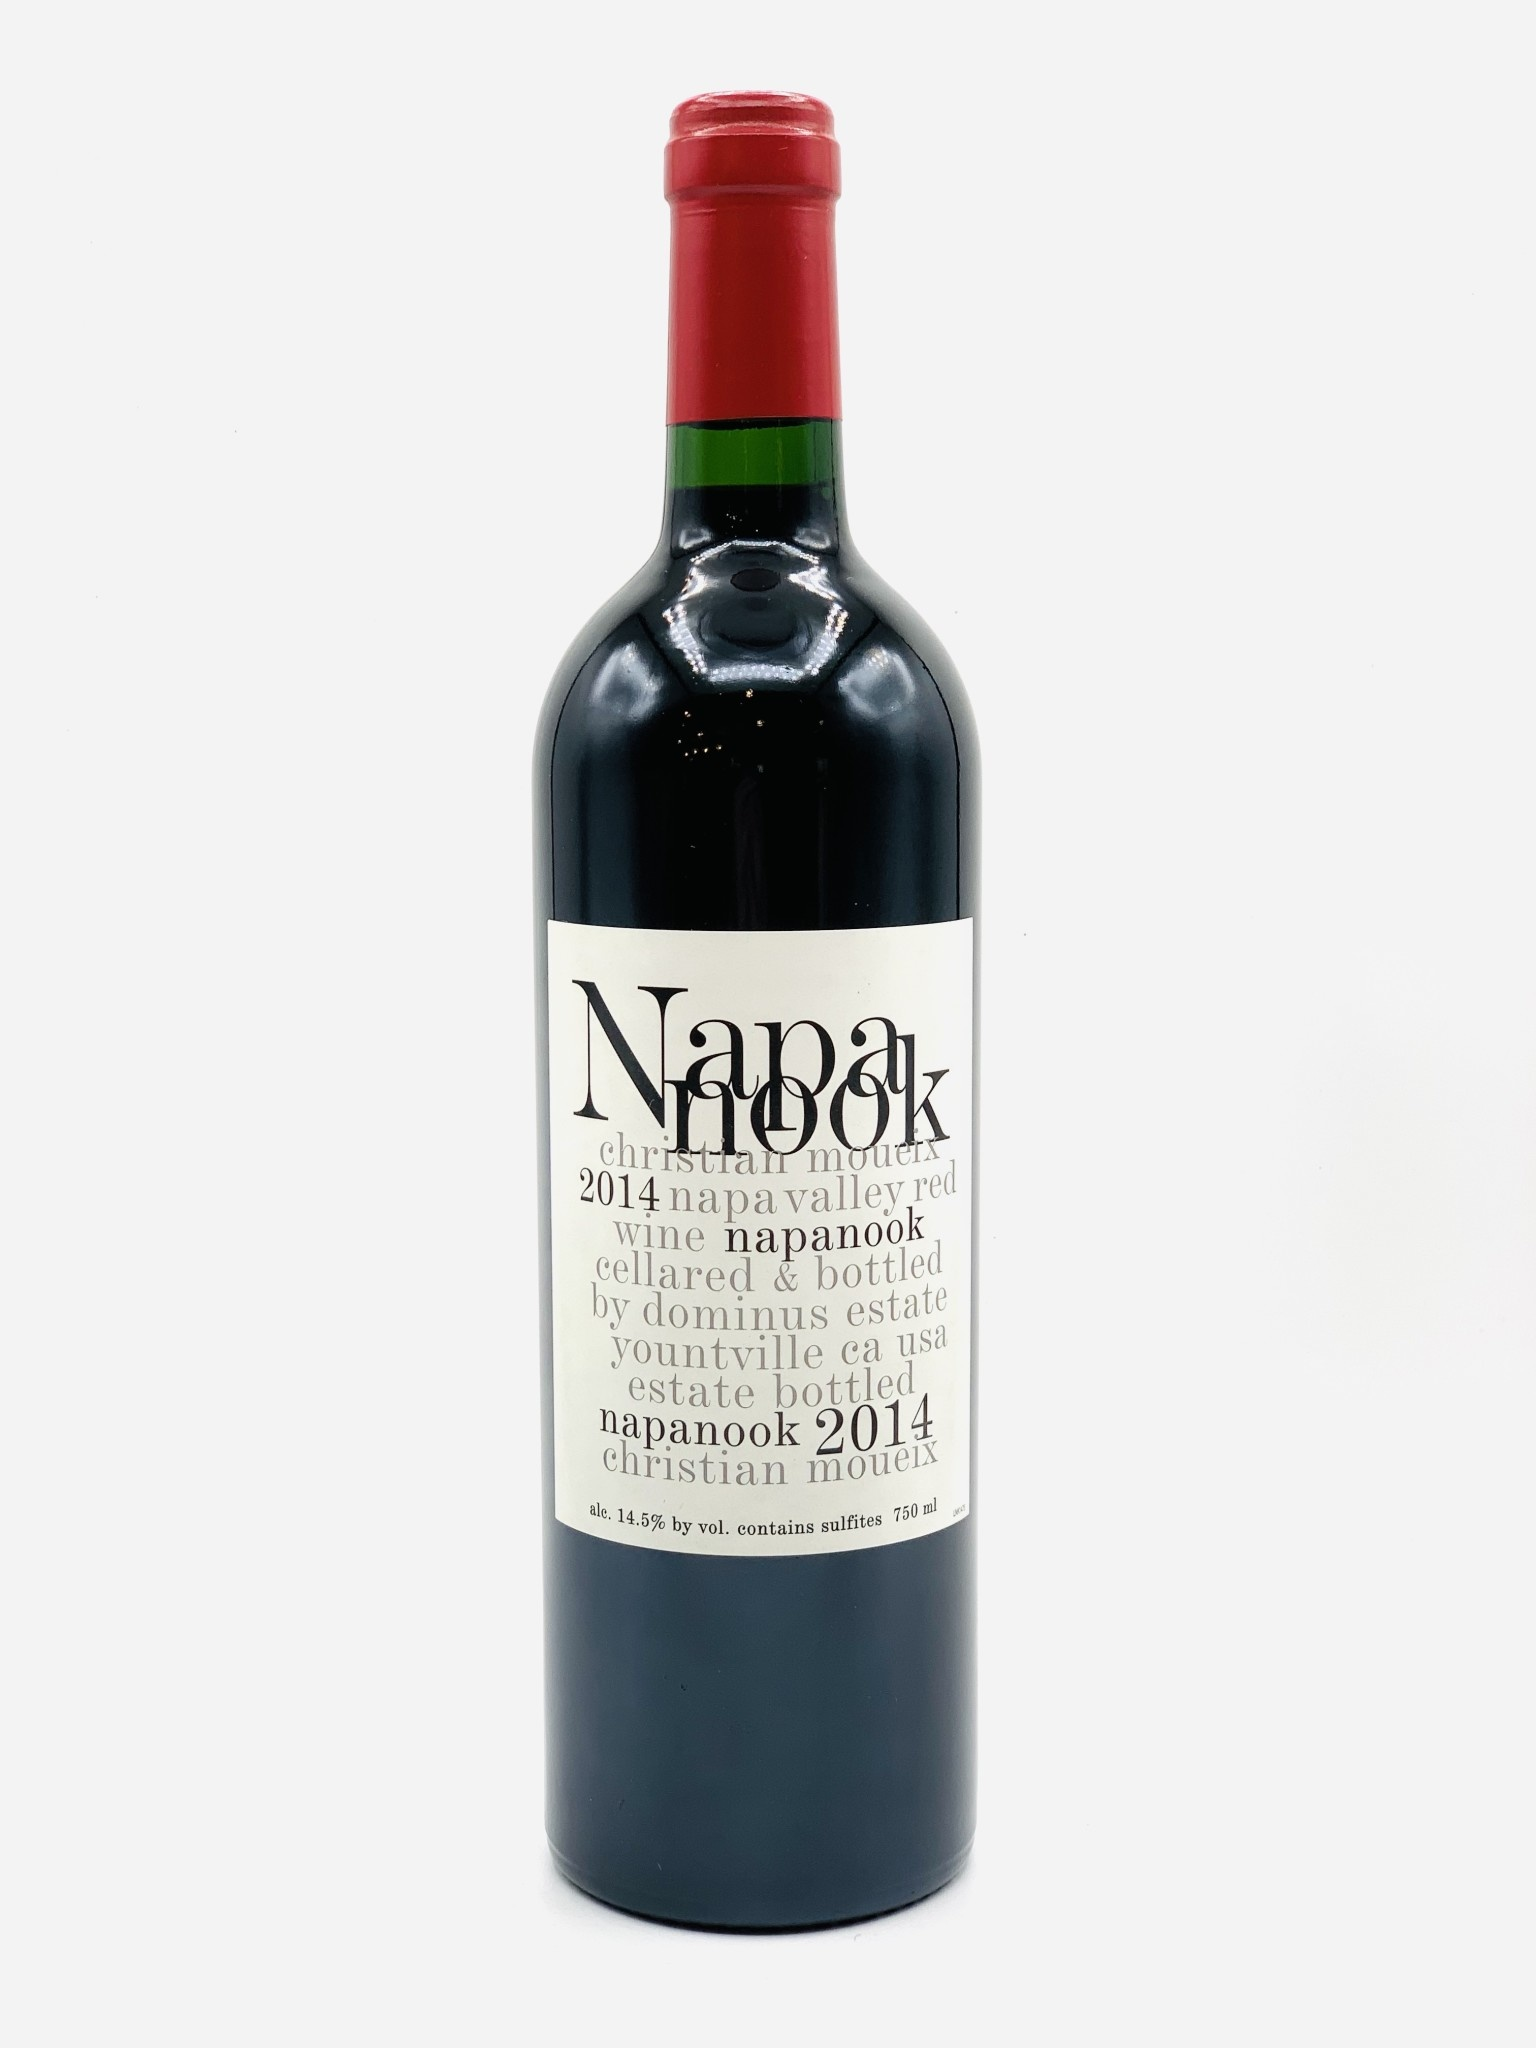 Napa Valley Red 2014 Napanook by Dominus 750ml